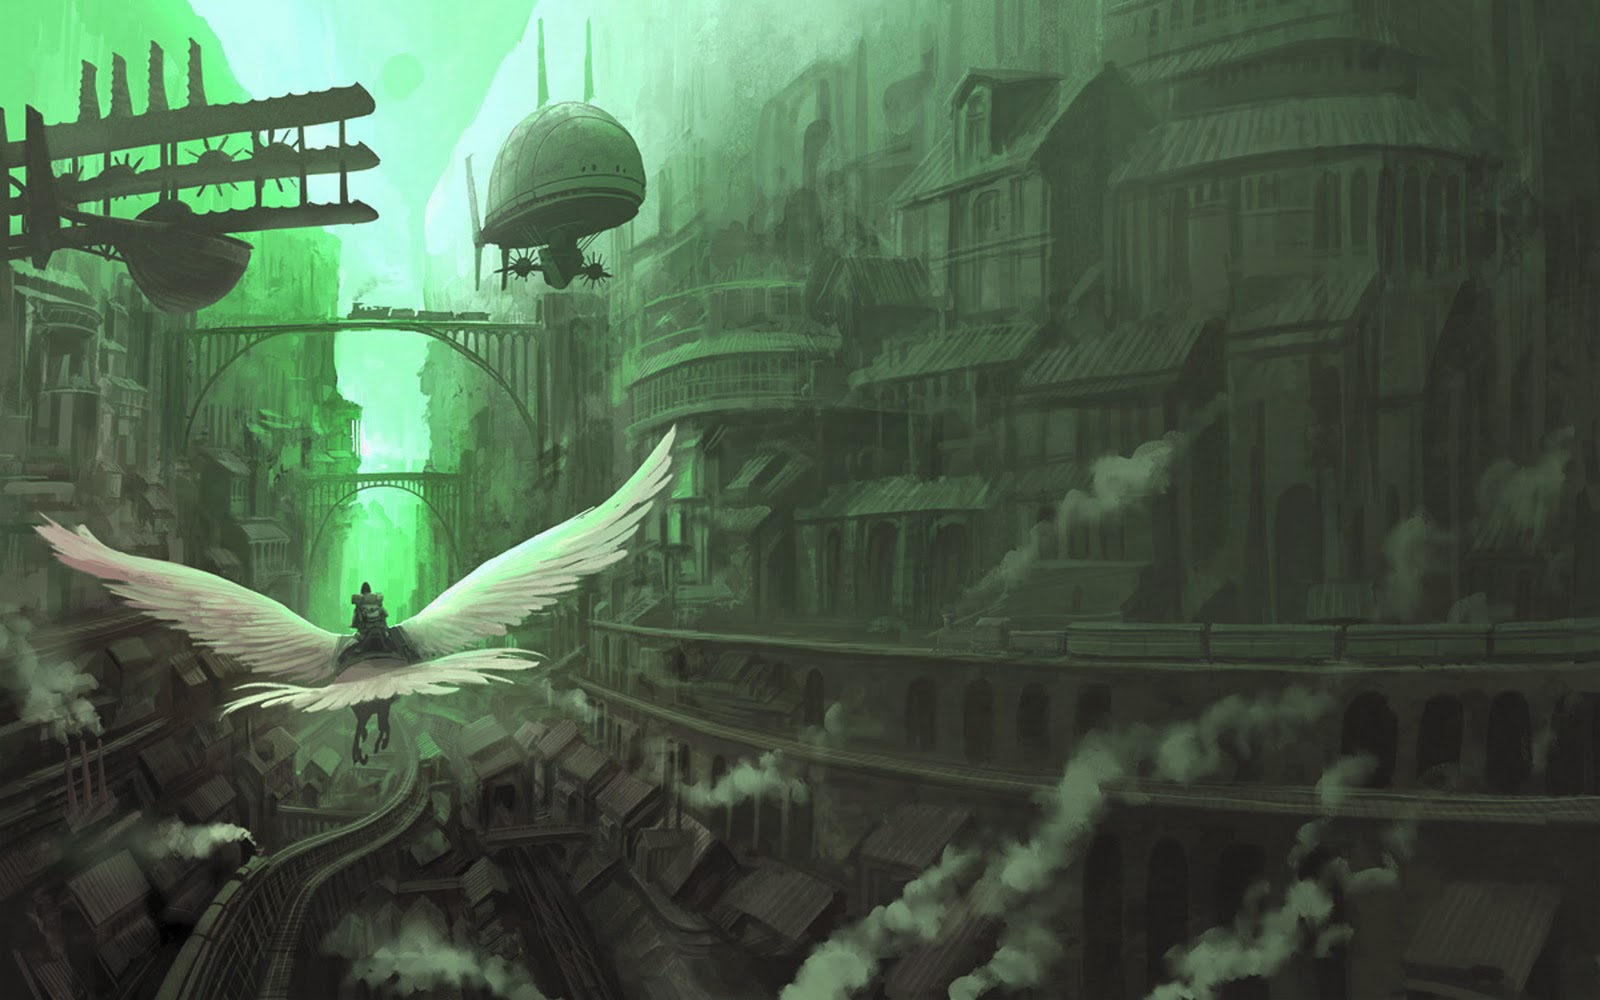 http://1.bp.blogspot.com/-Ut7JQxOFgp4/TZoPv4AKTCI/AAAAAAAAAHQ/5NOAYGJo-Hs/s1600/steam+fantasy+world+flying+steampunk+punk+fables+++1920x1200+Wallpaper.jpg